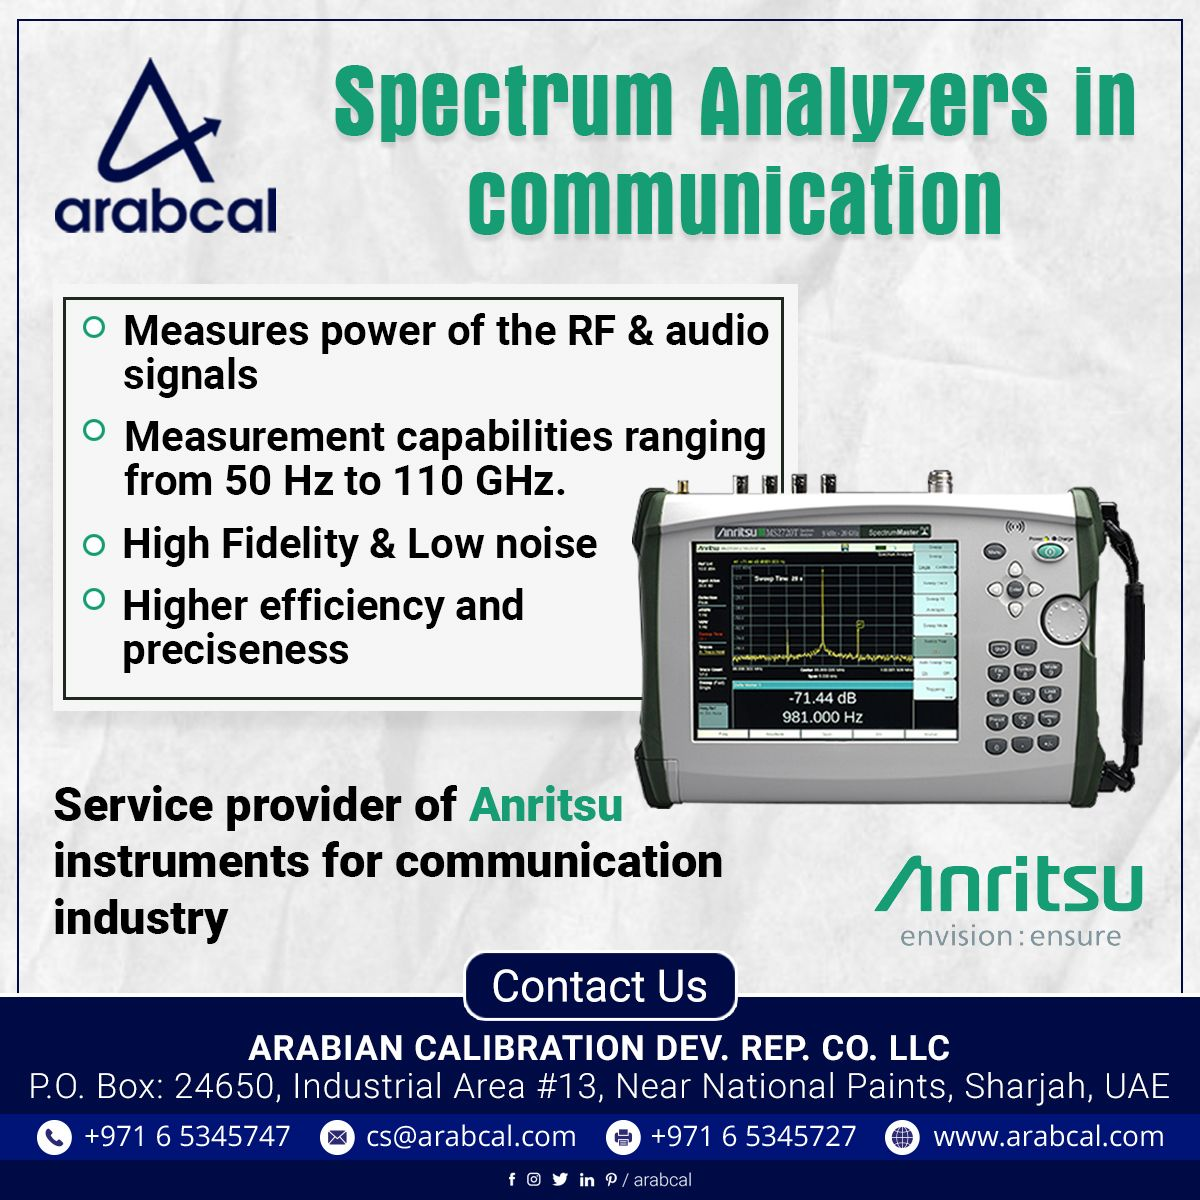 Spectrum Analyzers are widely used in the communication